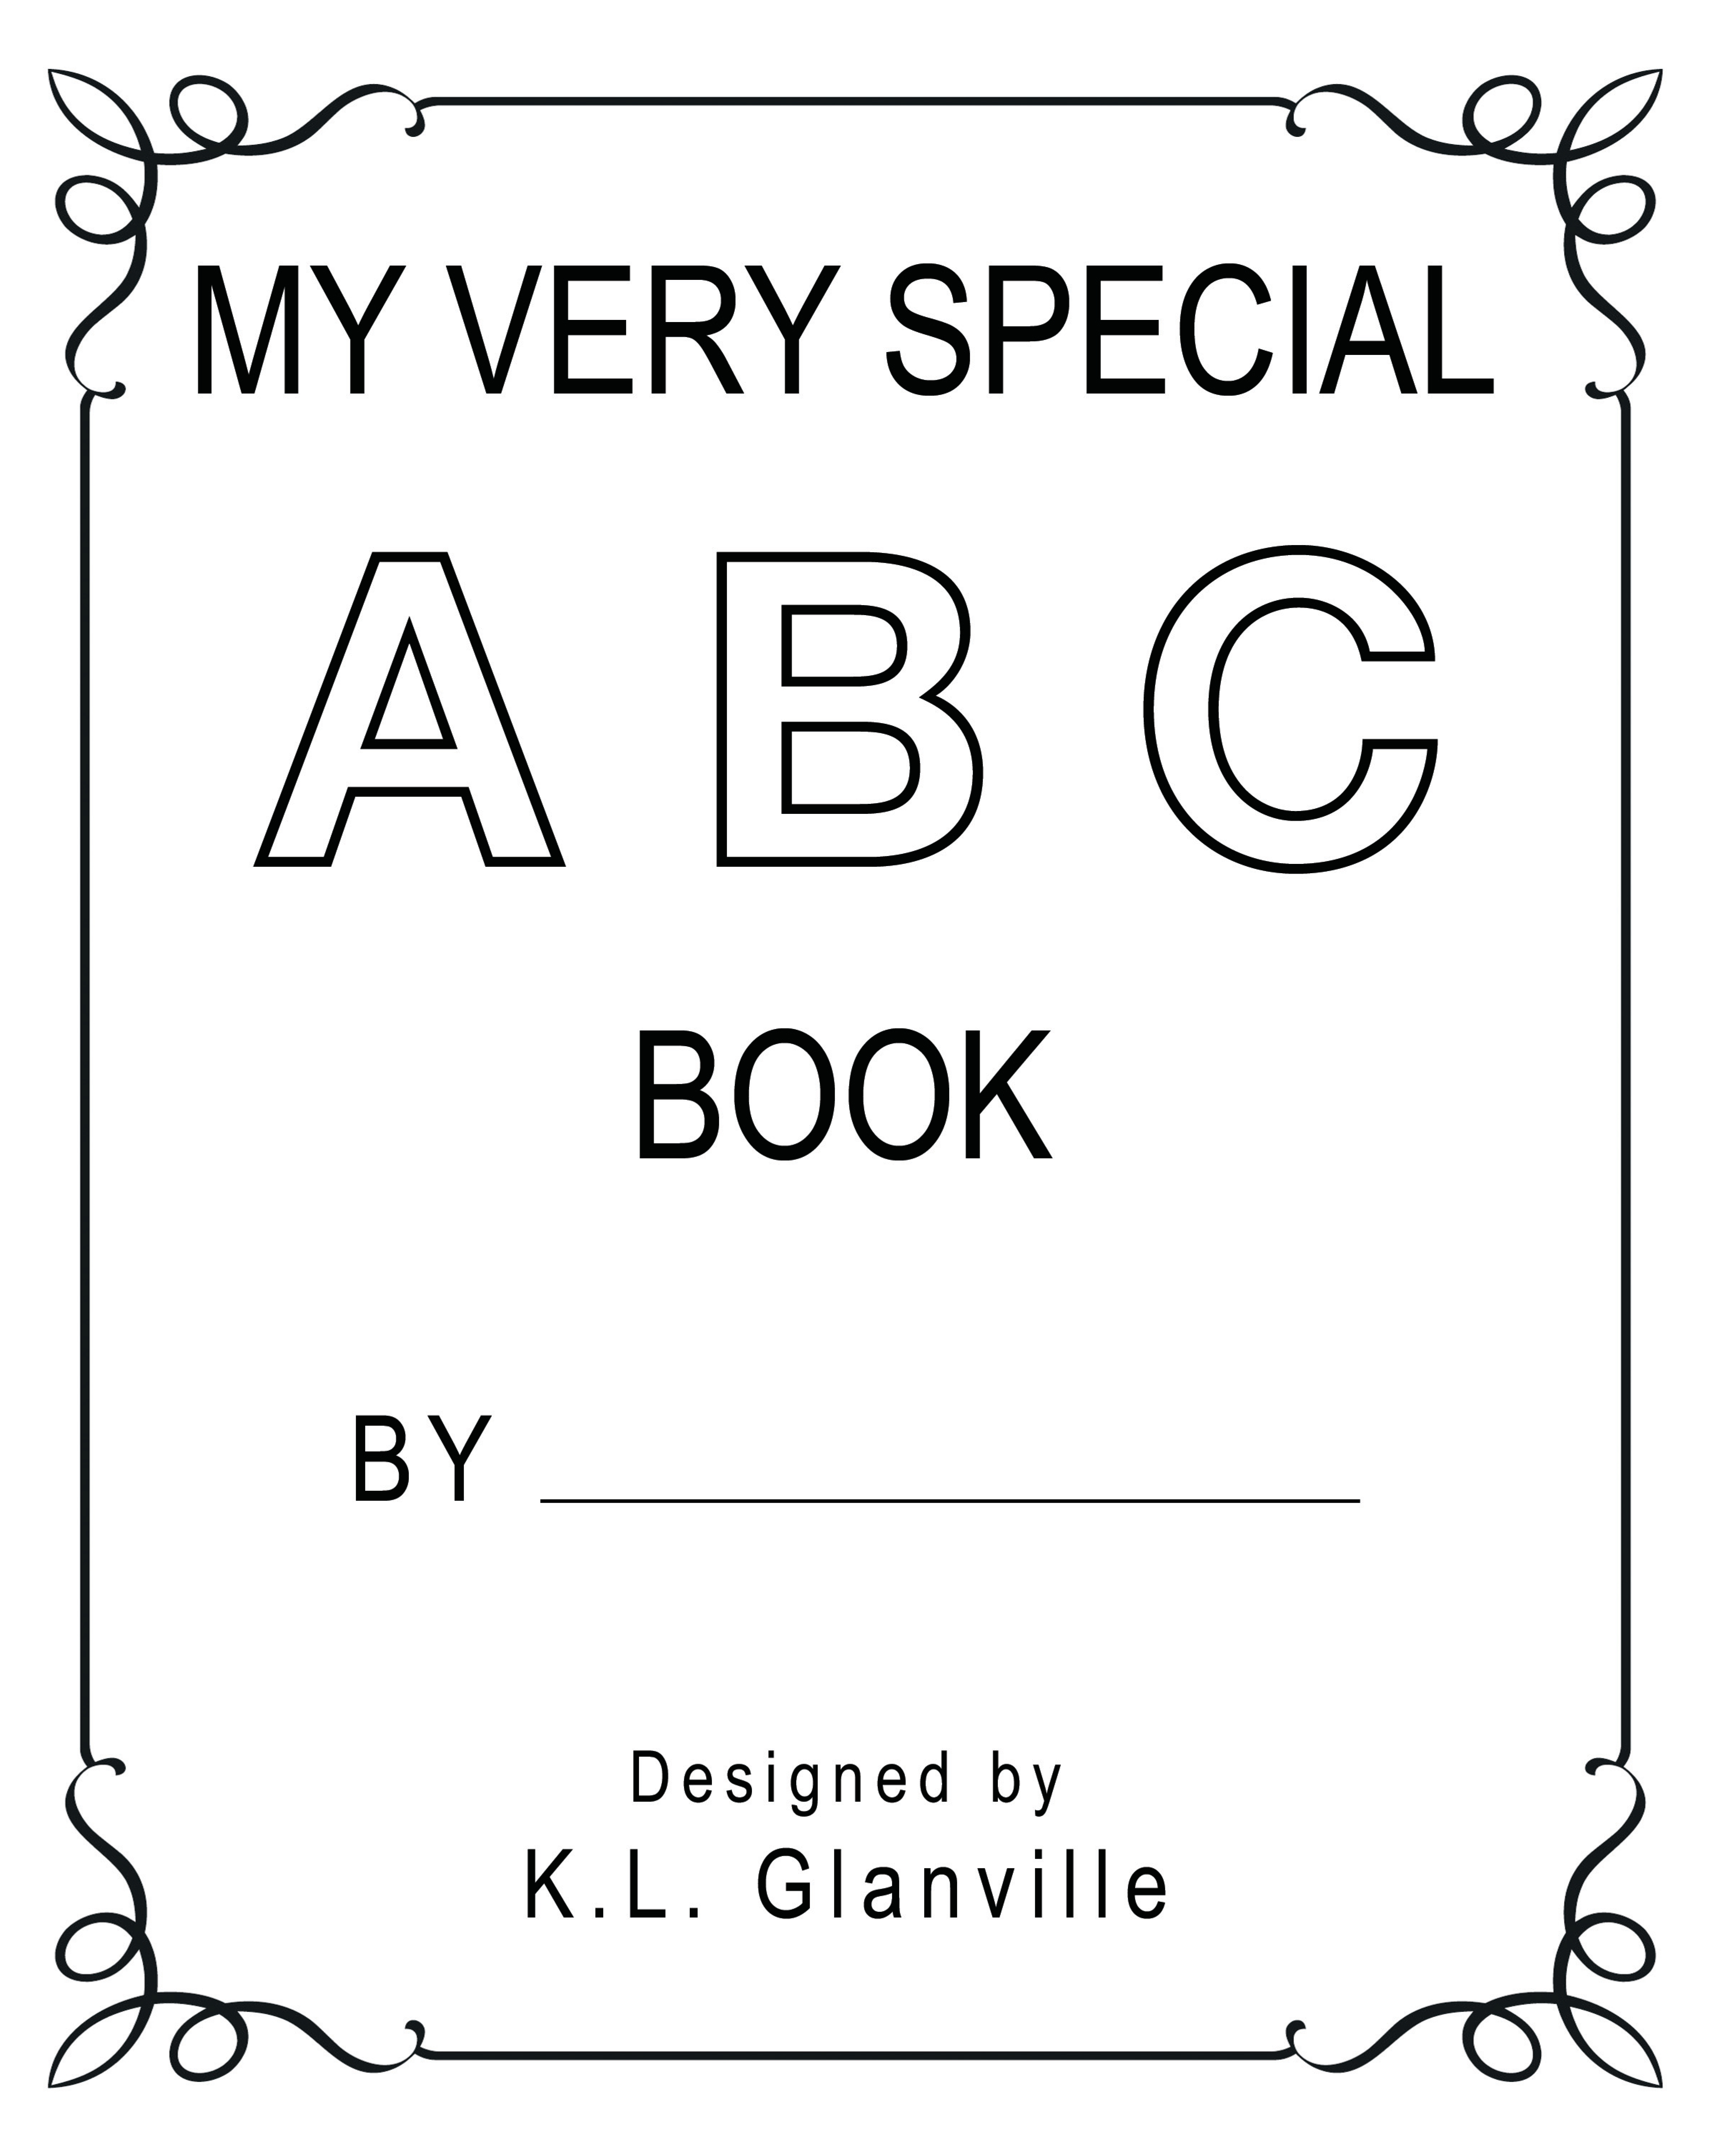 Abc Book Cover Printable : My very special abc book first few pages k l glanville